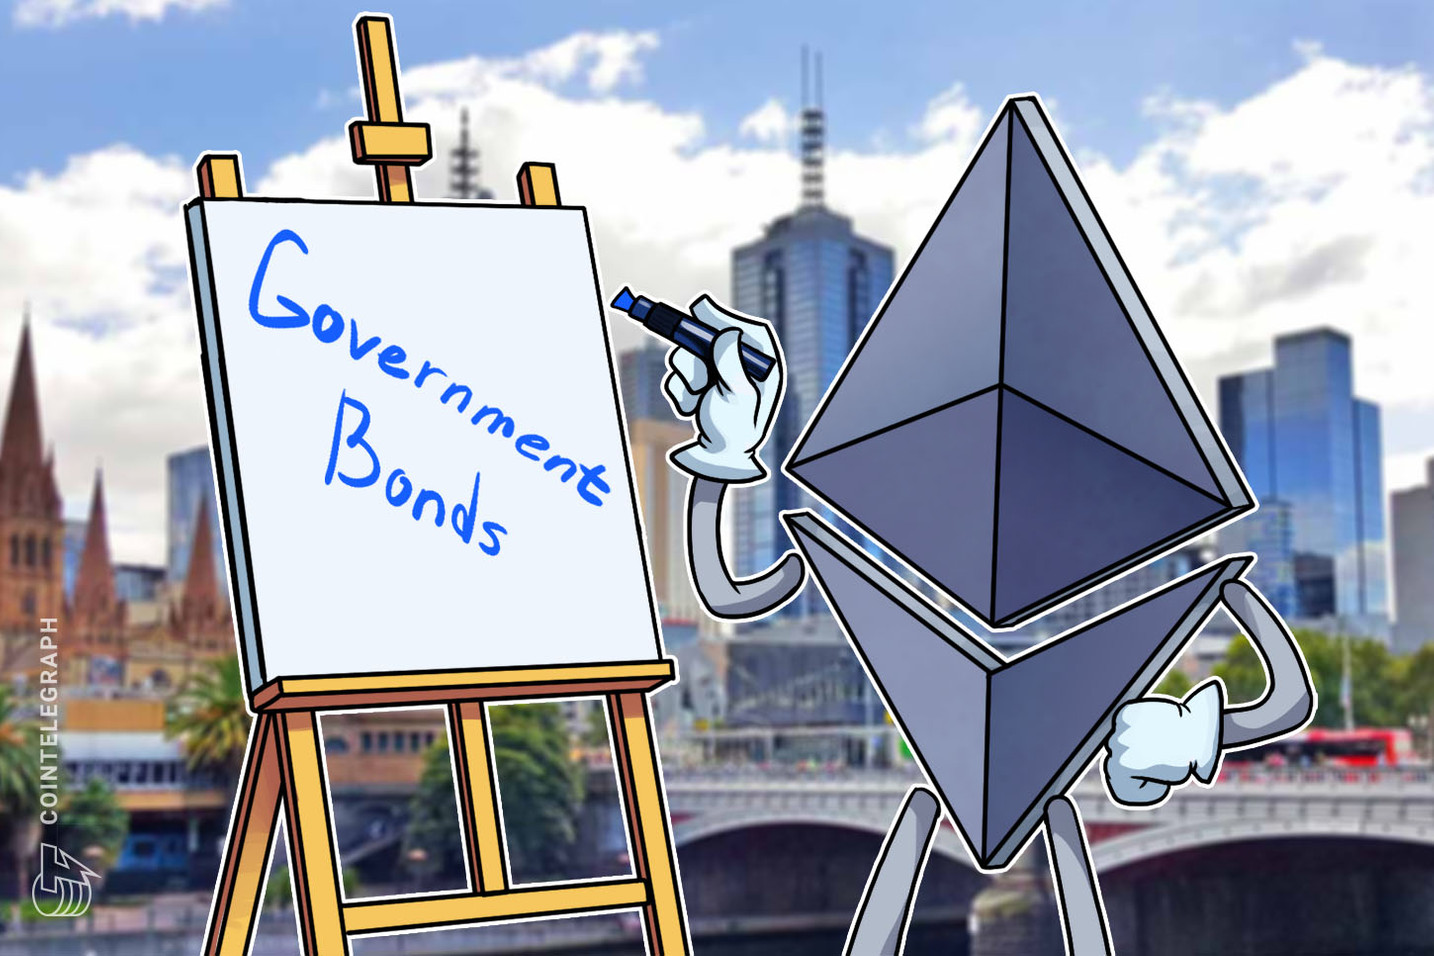 Austria to Use Ethereum Public Blockchain to Issue $1.35 Bln in Government Bonds